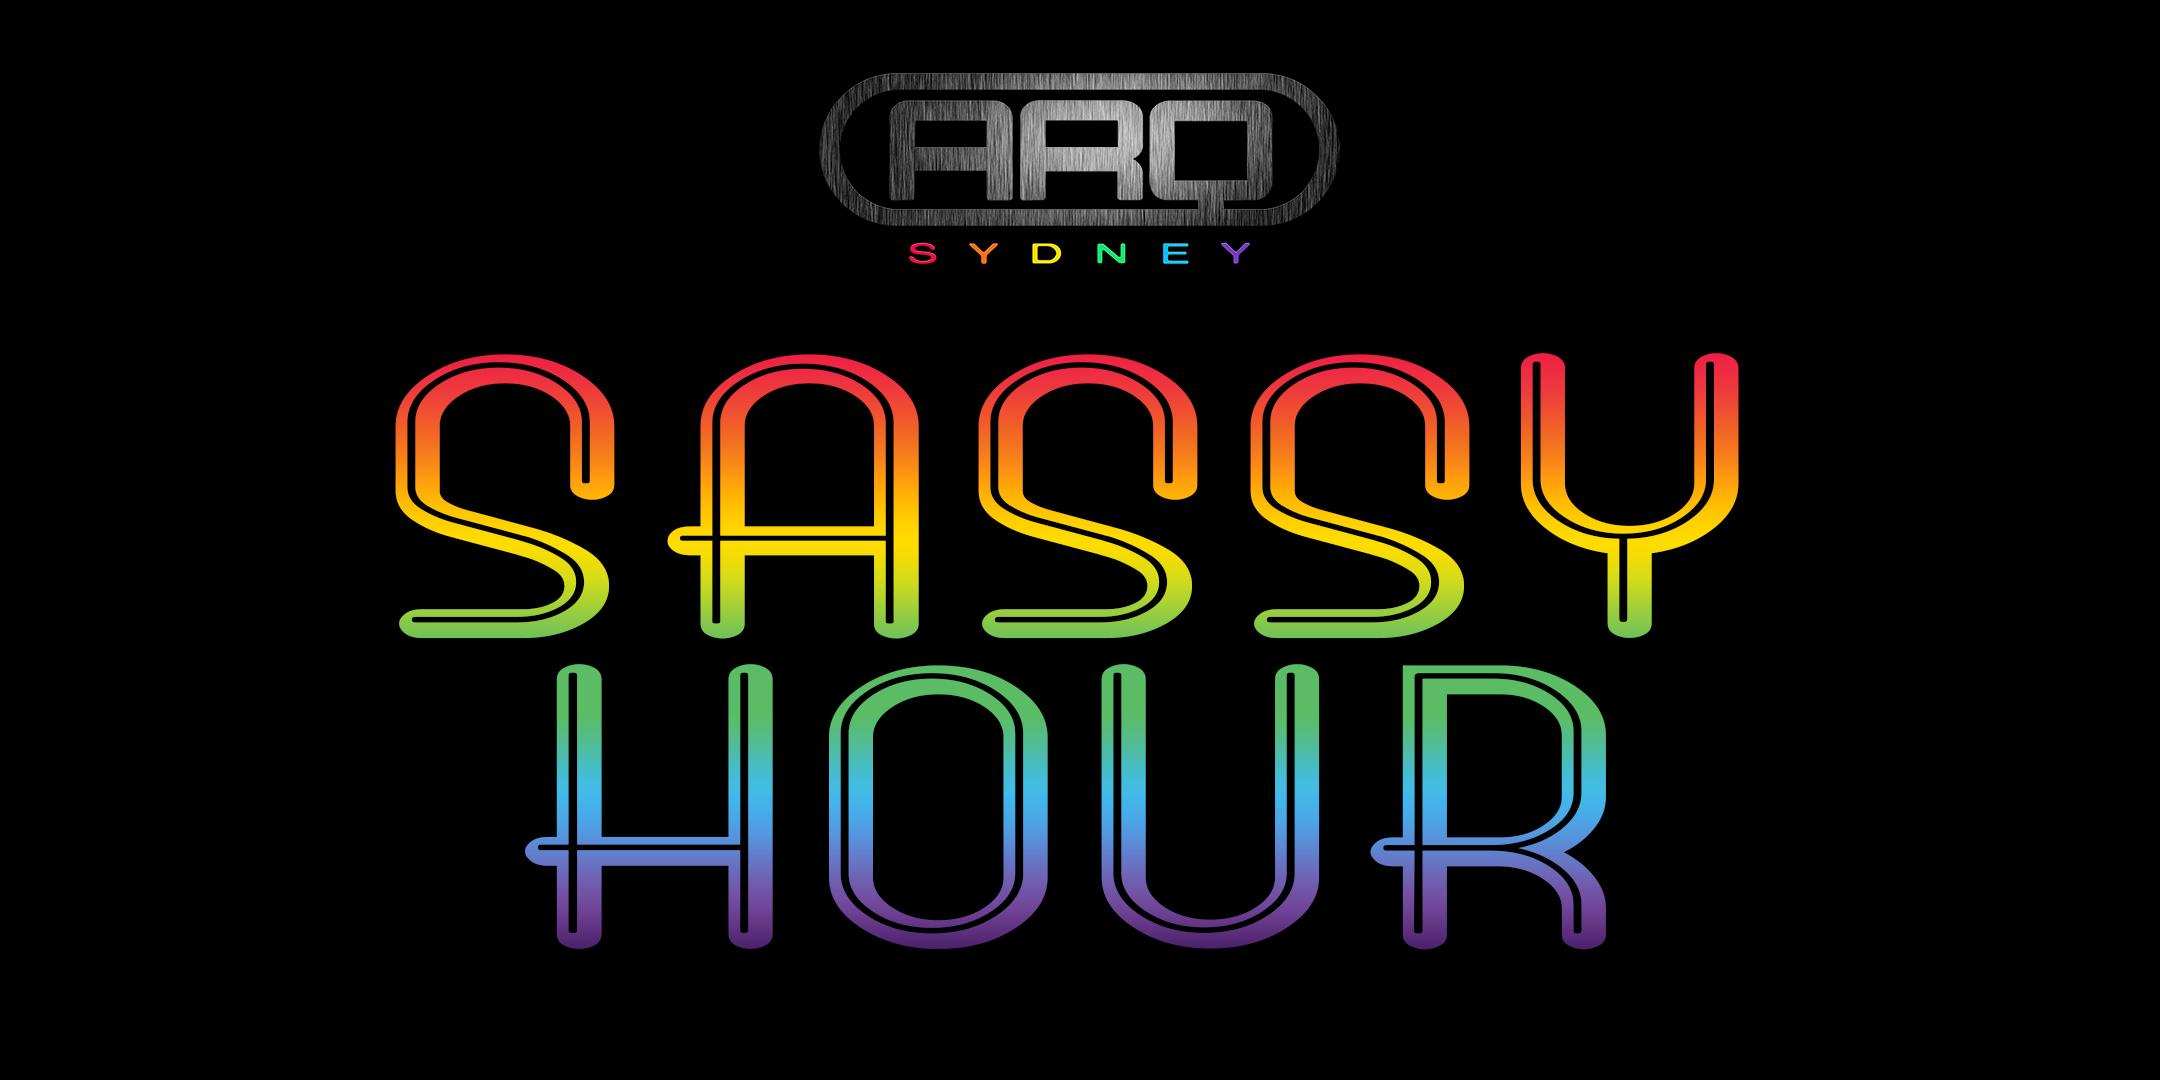 SASSY HOUR @ ARQ SYDNEY - Sat 4th Apr, 2020 at 10:30pm AEDT.